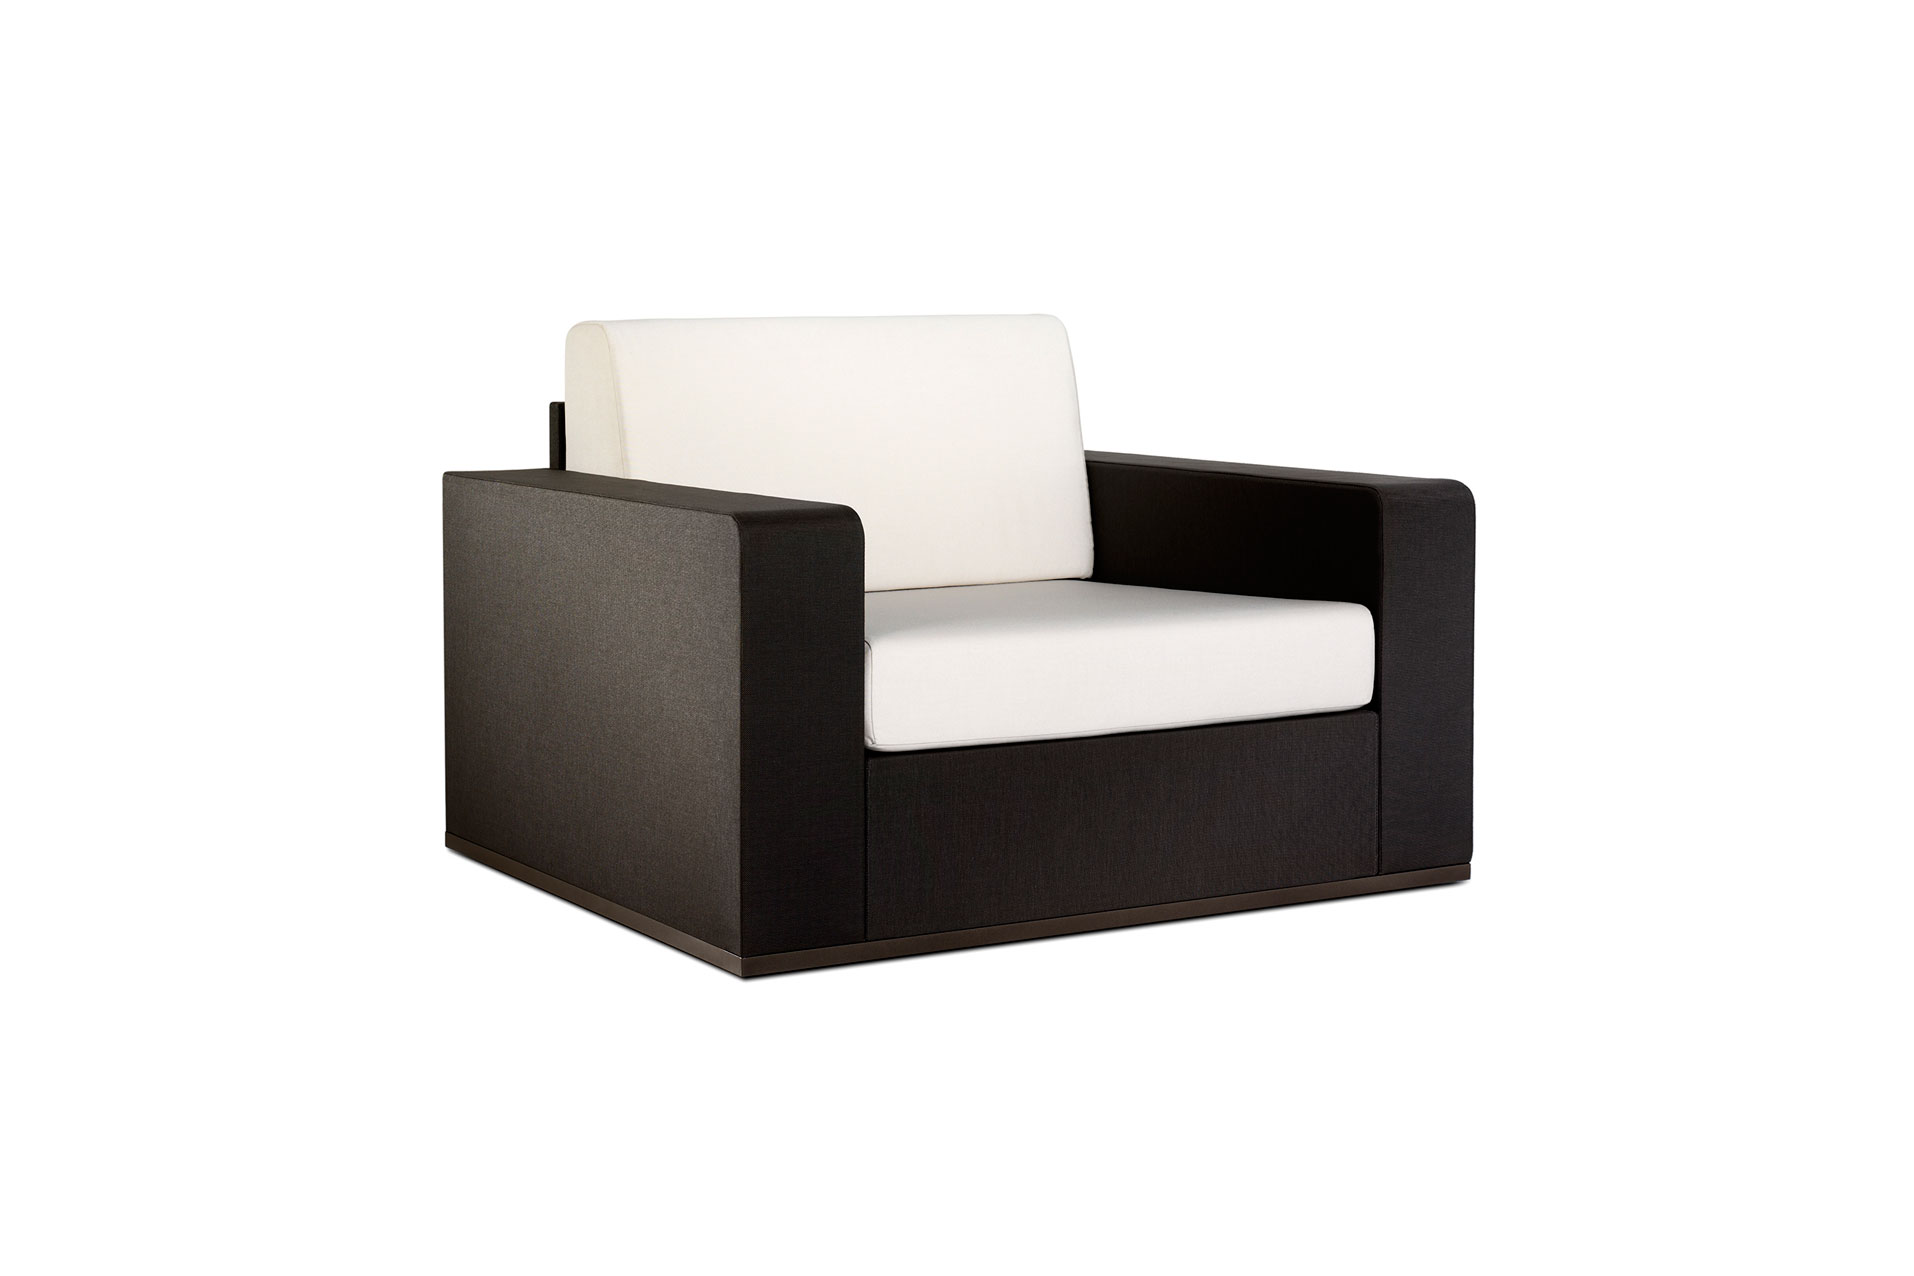 Lounge sofa outdoor  MOOD lounge sofa – BIVAQ